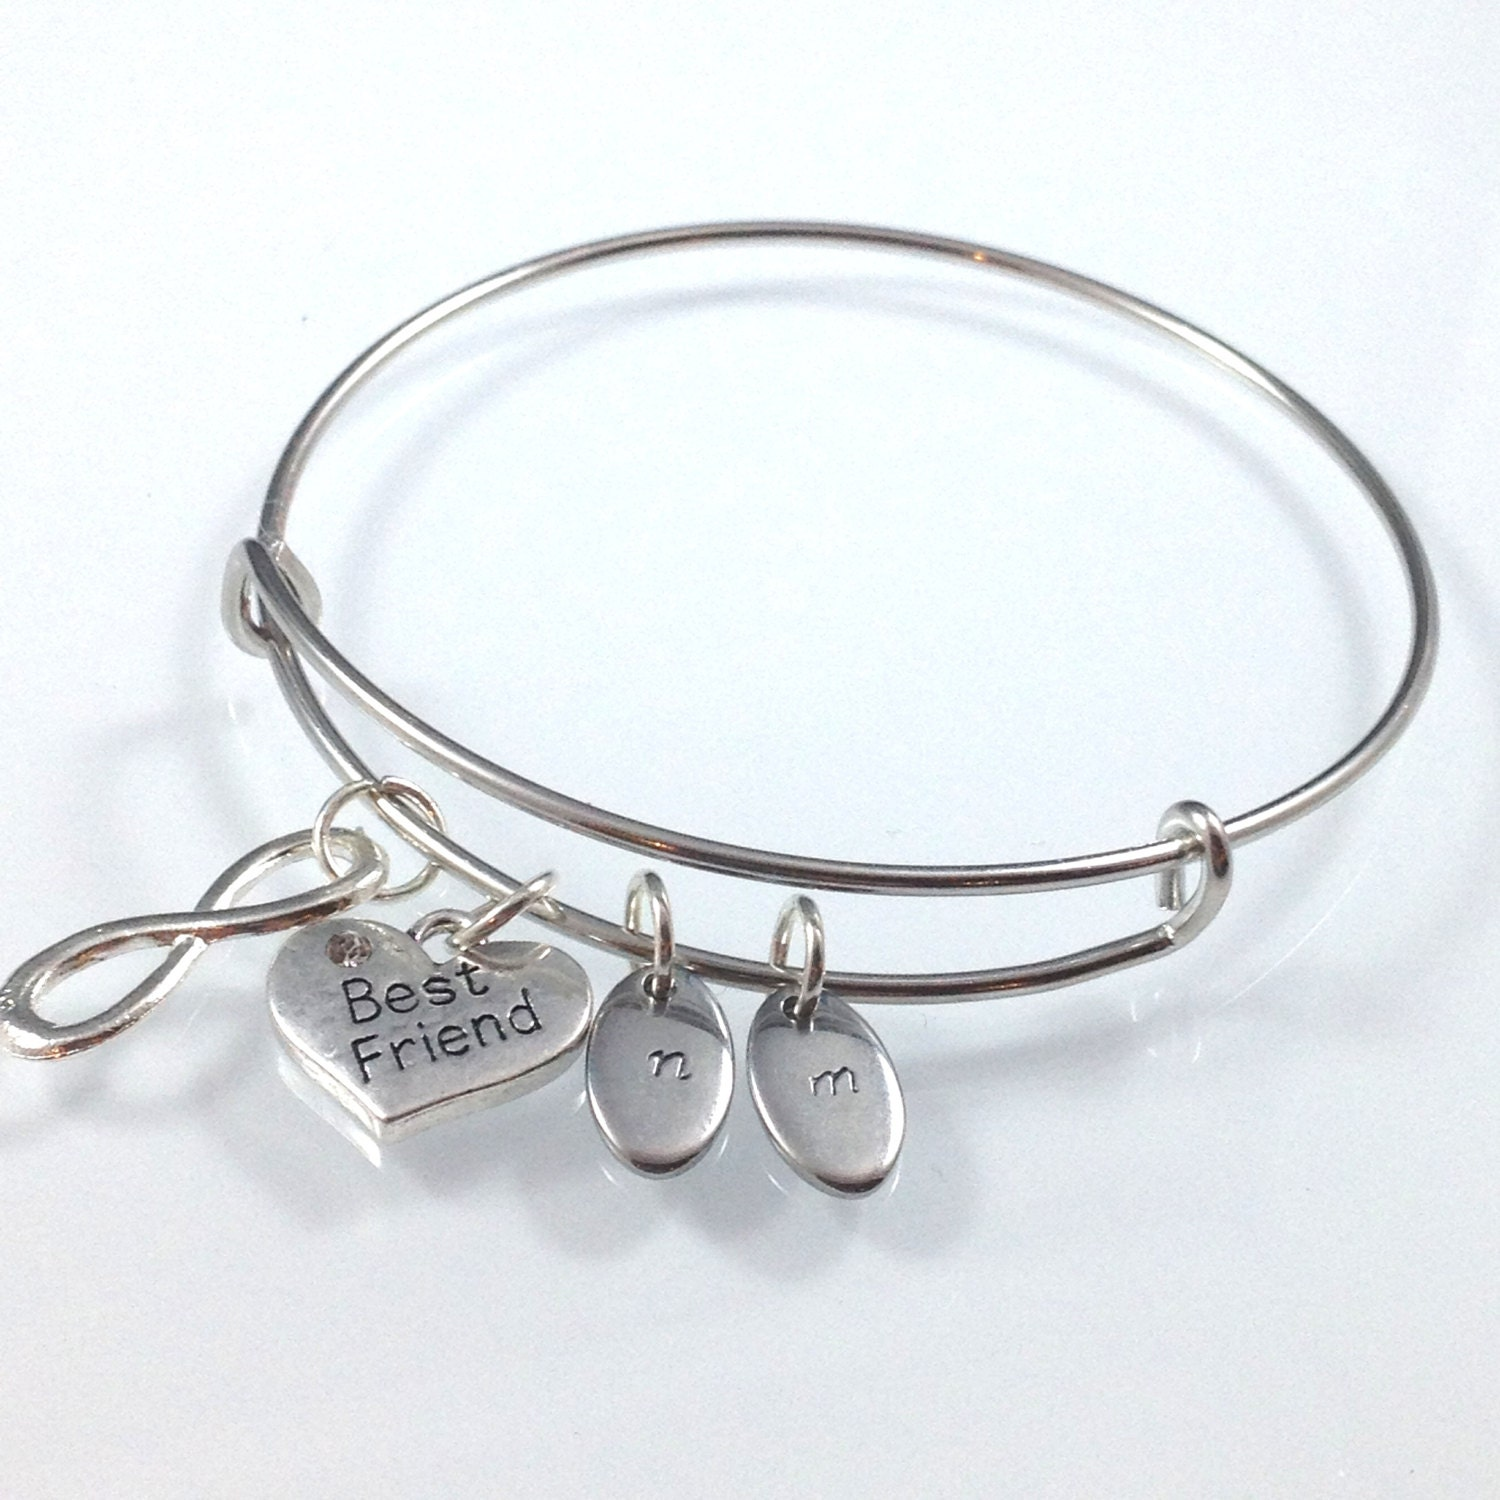 Best Friend Charm Bracelet: Best Friend Bangle Bracelet Infinity Charm Bangle